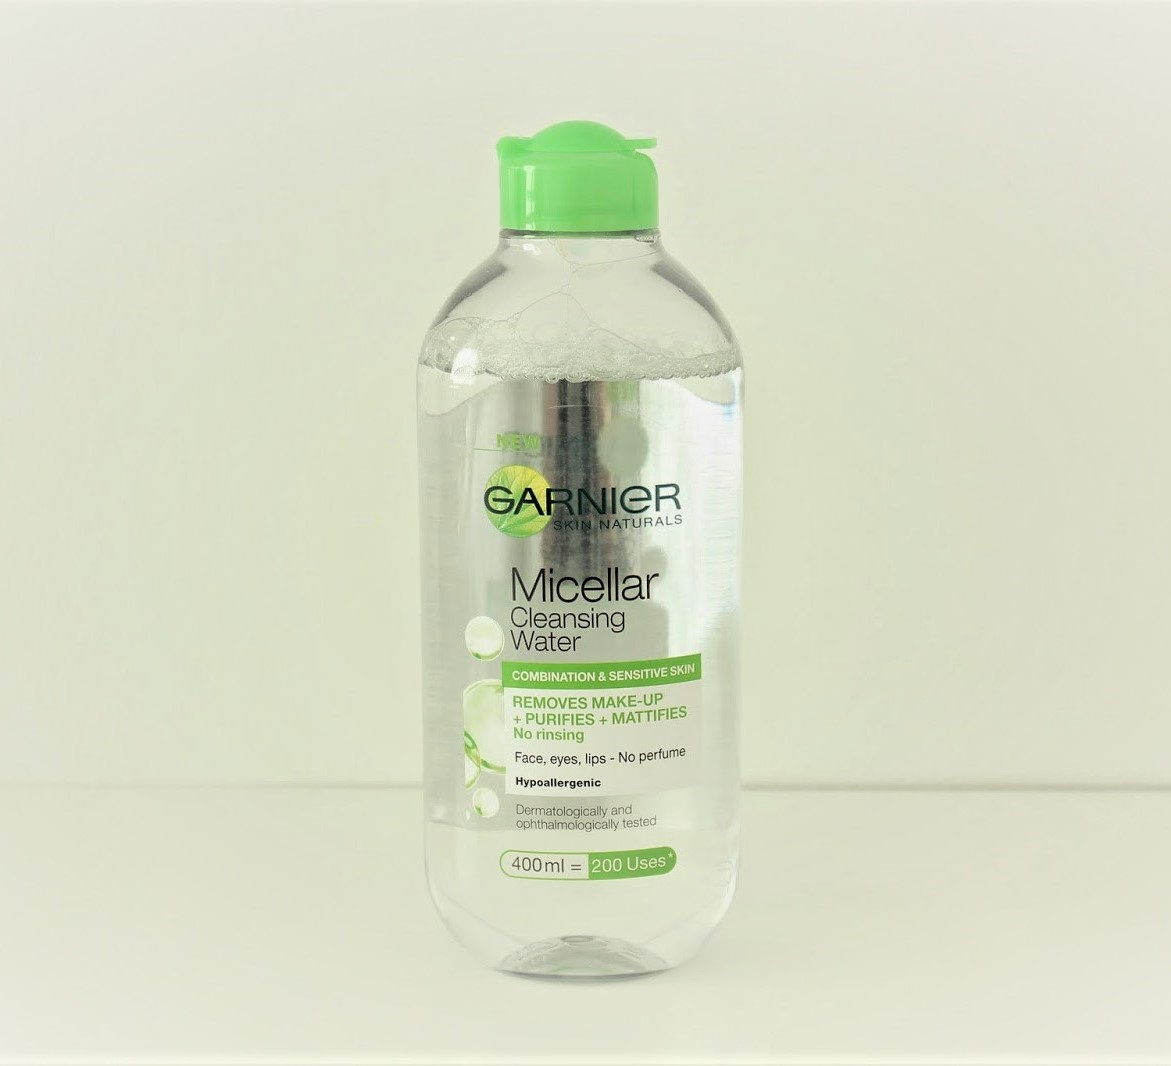 nuoc-tay-trang-garnier-cleansing-water-combination-sensitive-01